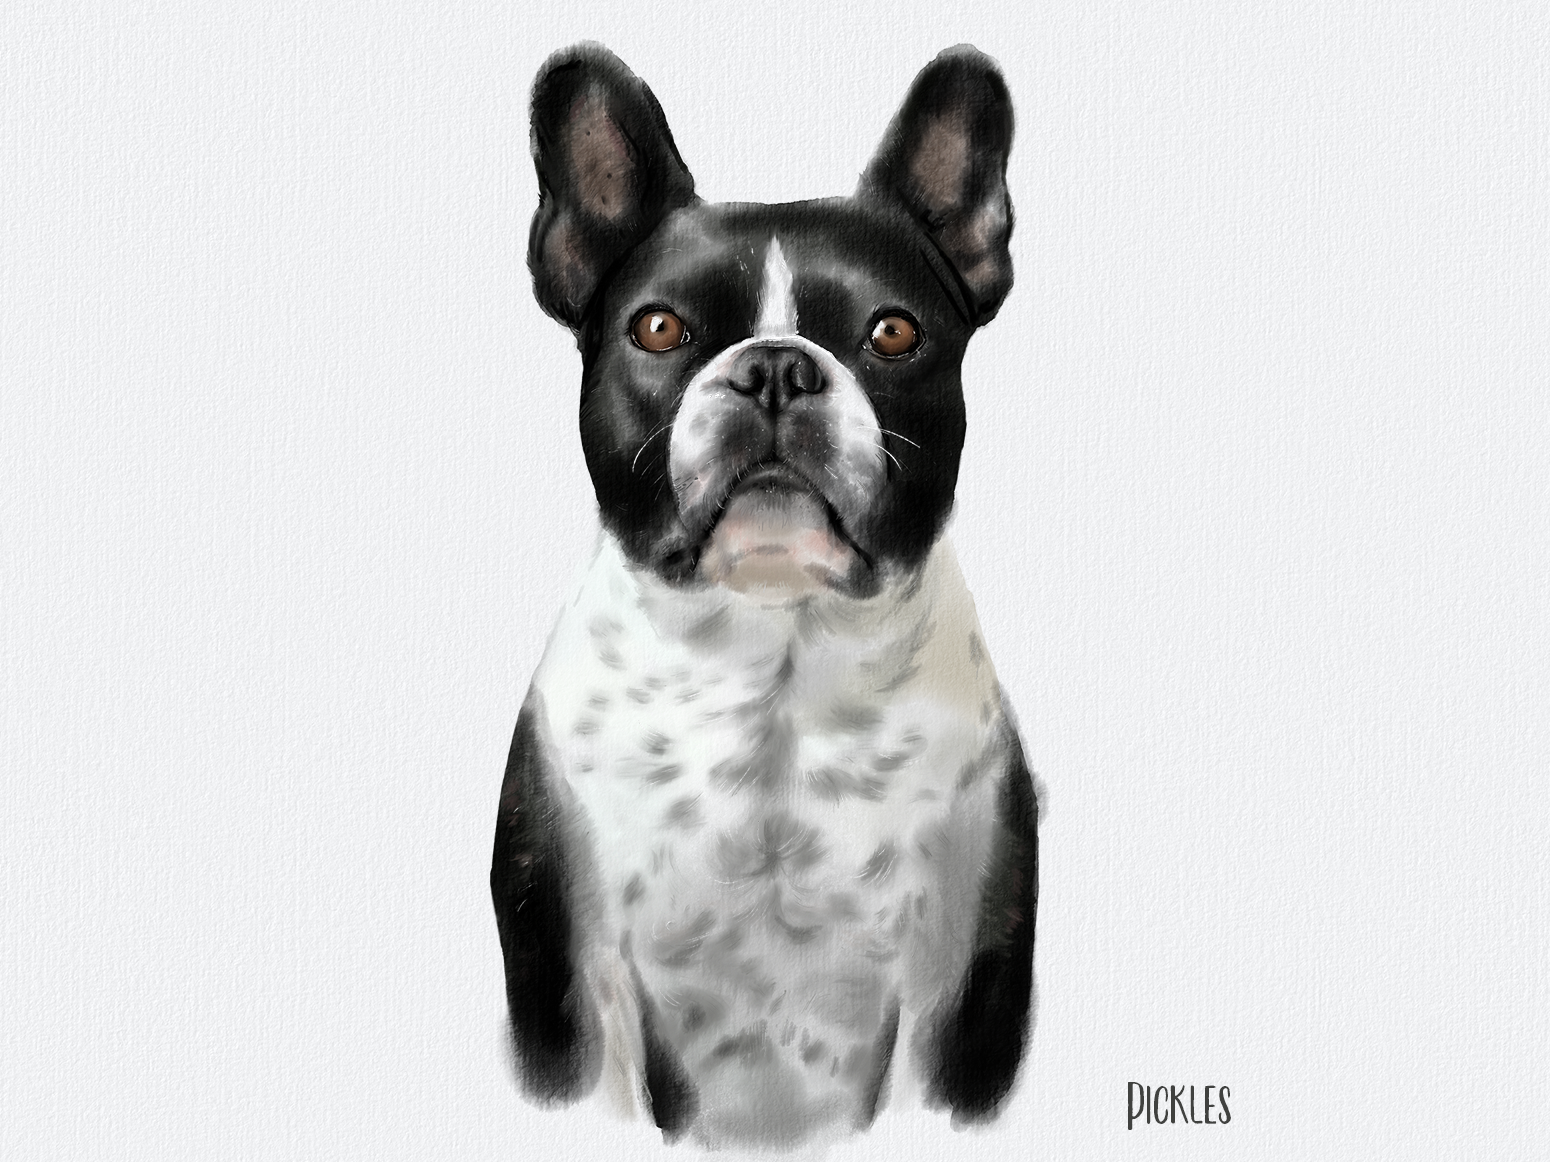 Meet Pickles The French Bulldog By Darina Gavrilyuk On Dribbble